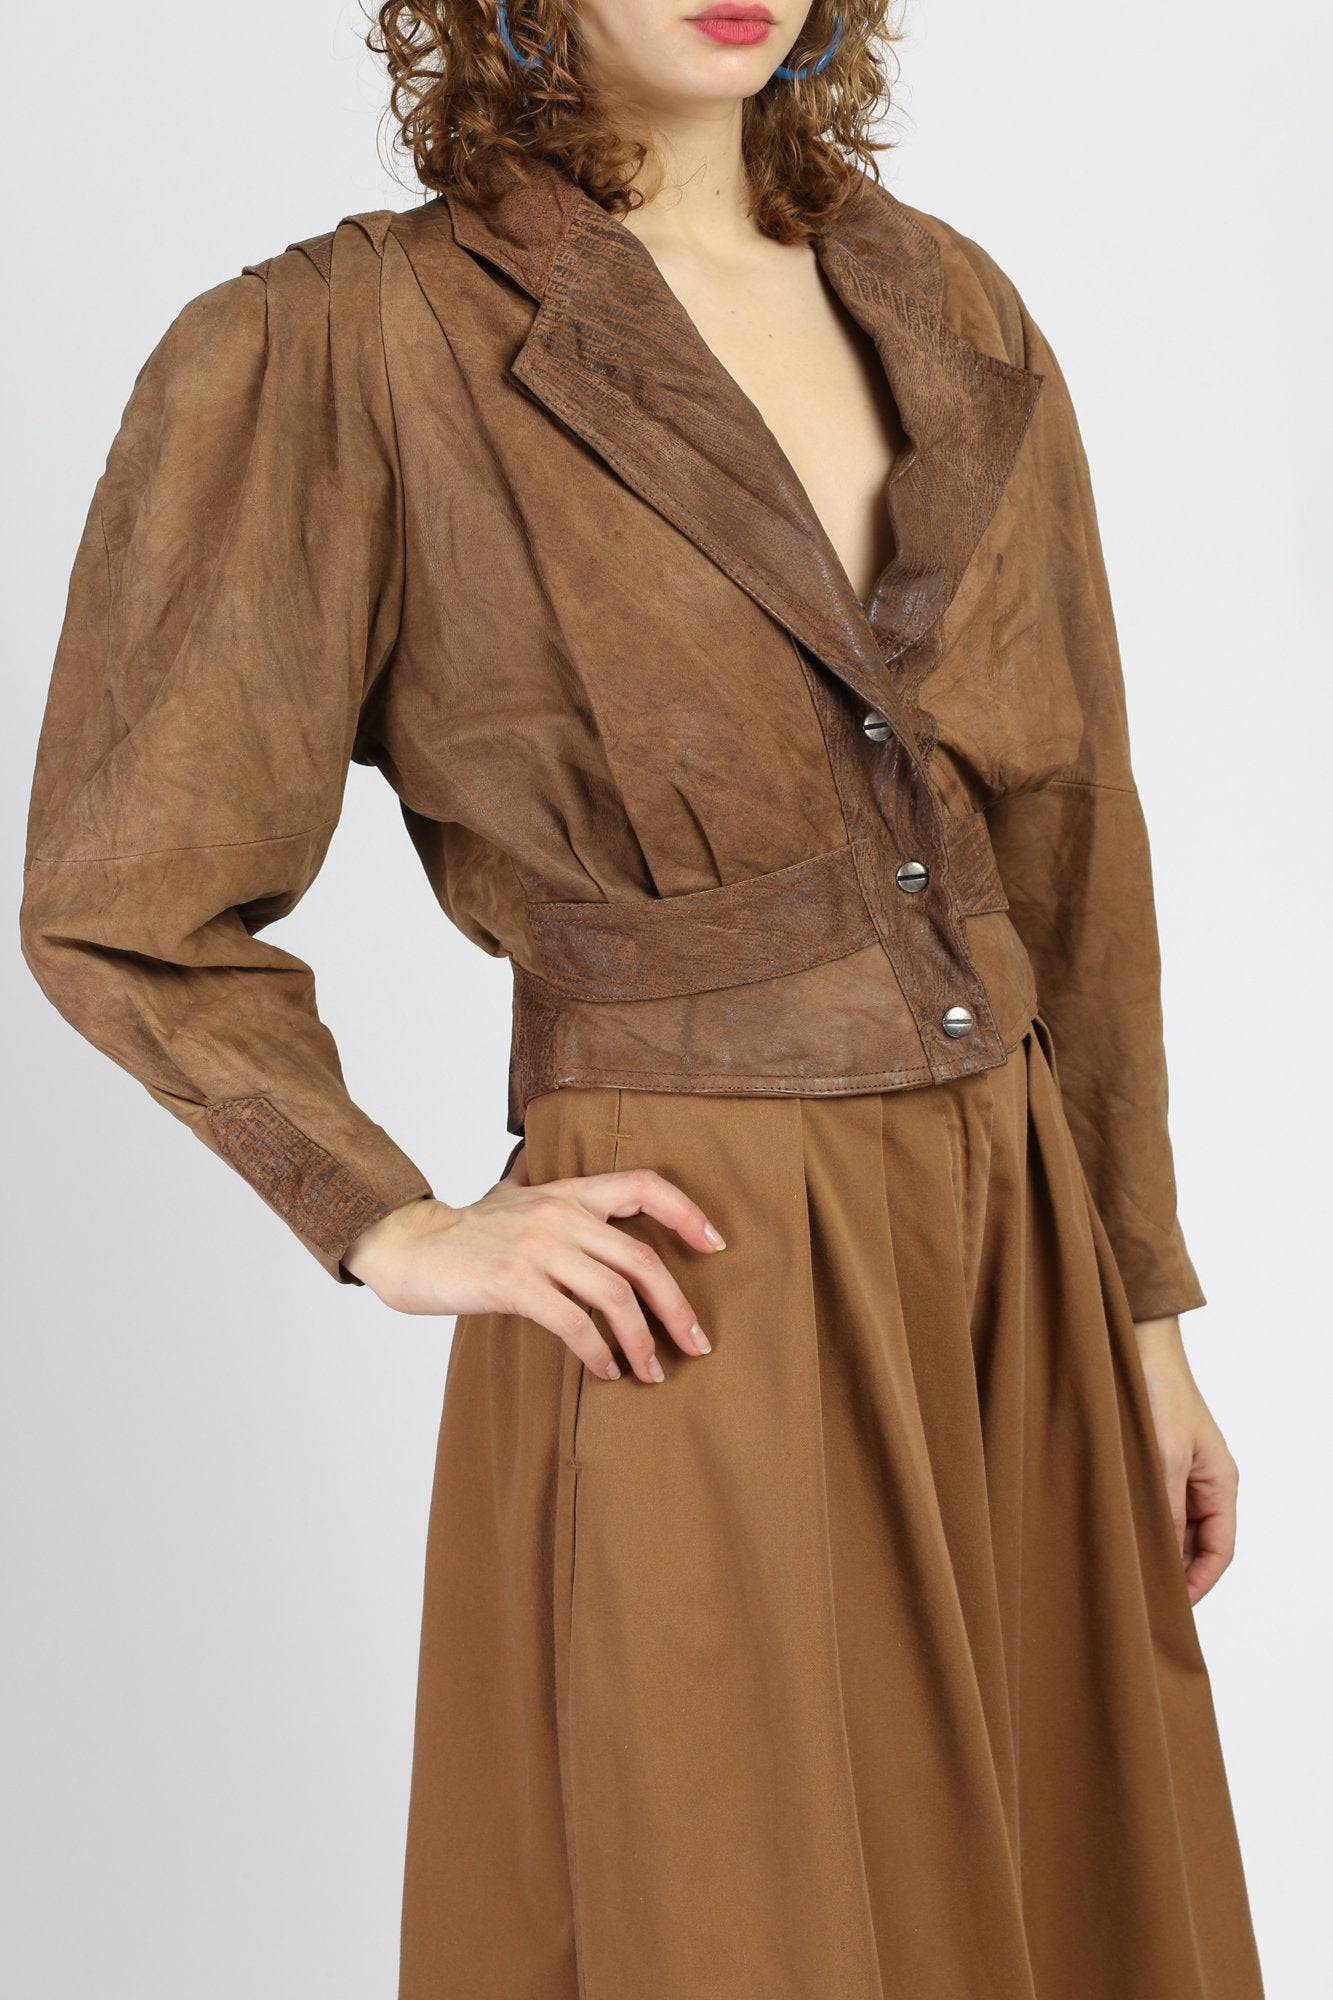 80s Cropped Brown Leather Jacket - Small